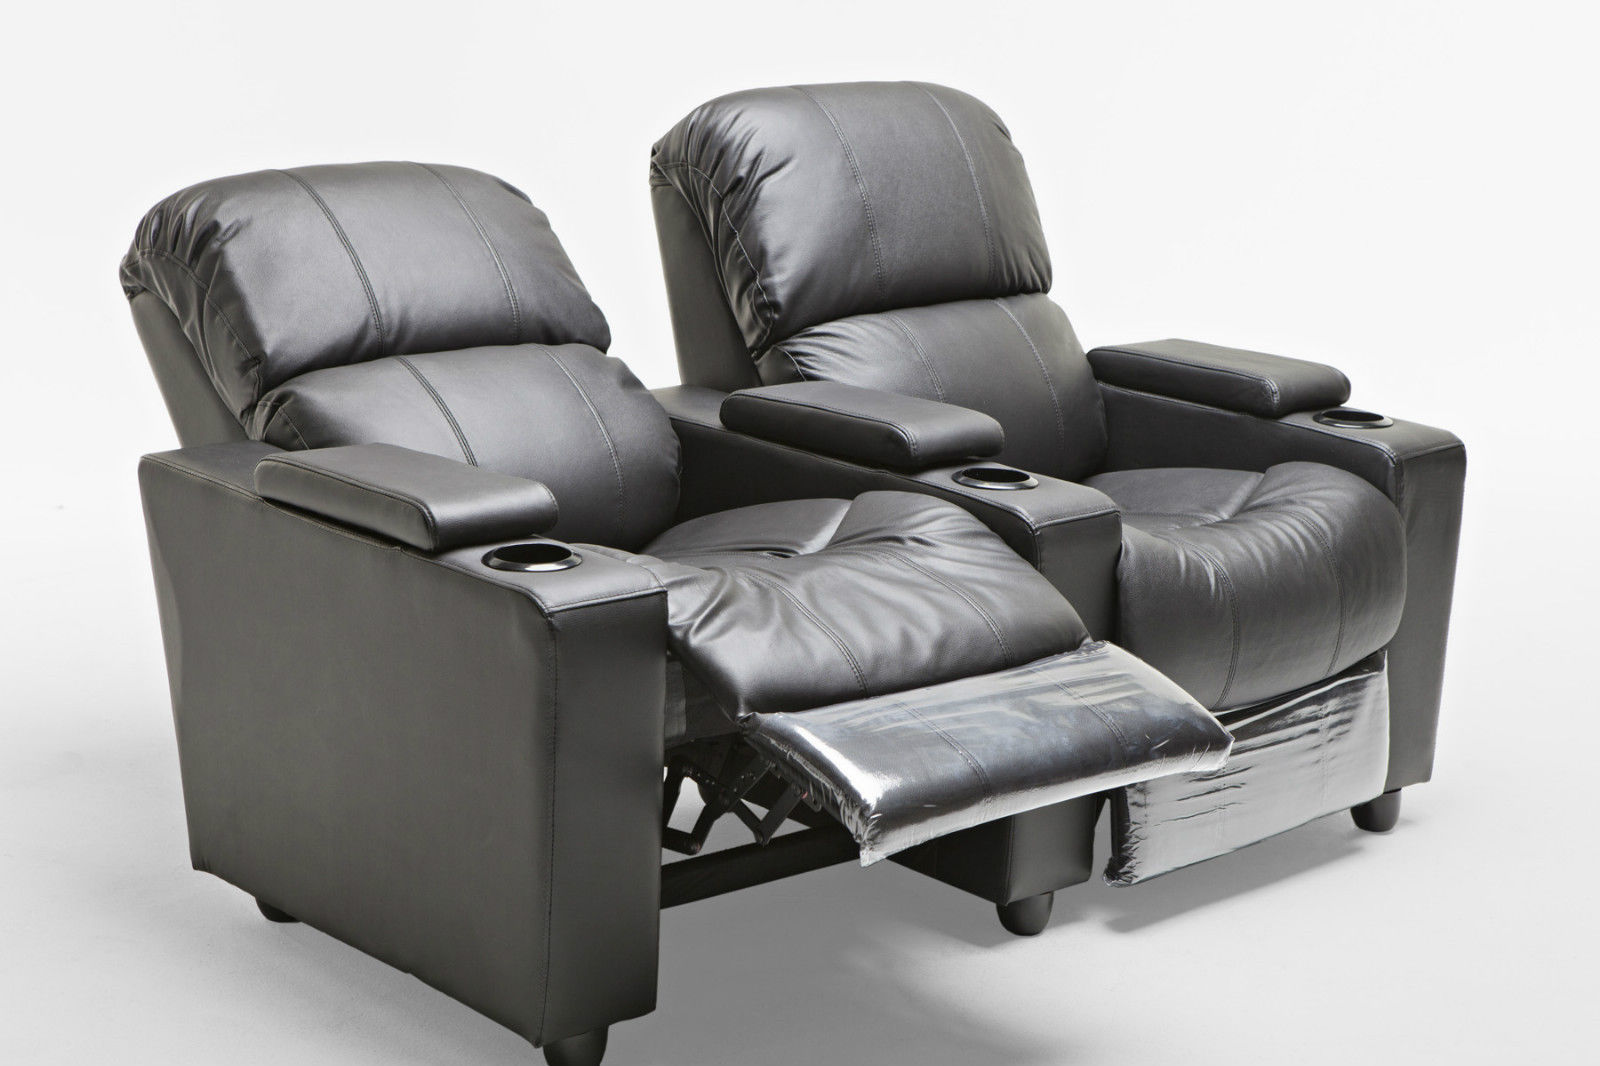 4 person reclining sofa affordable sets bangalore 3 seat recliner four seater